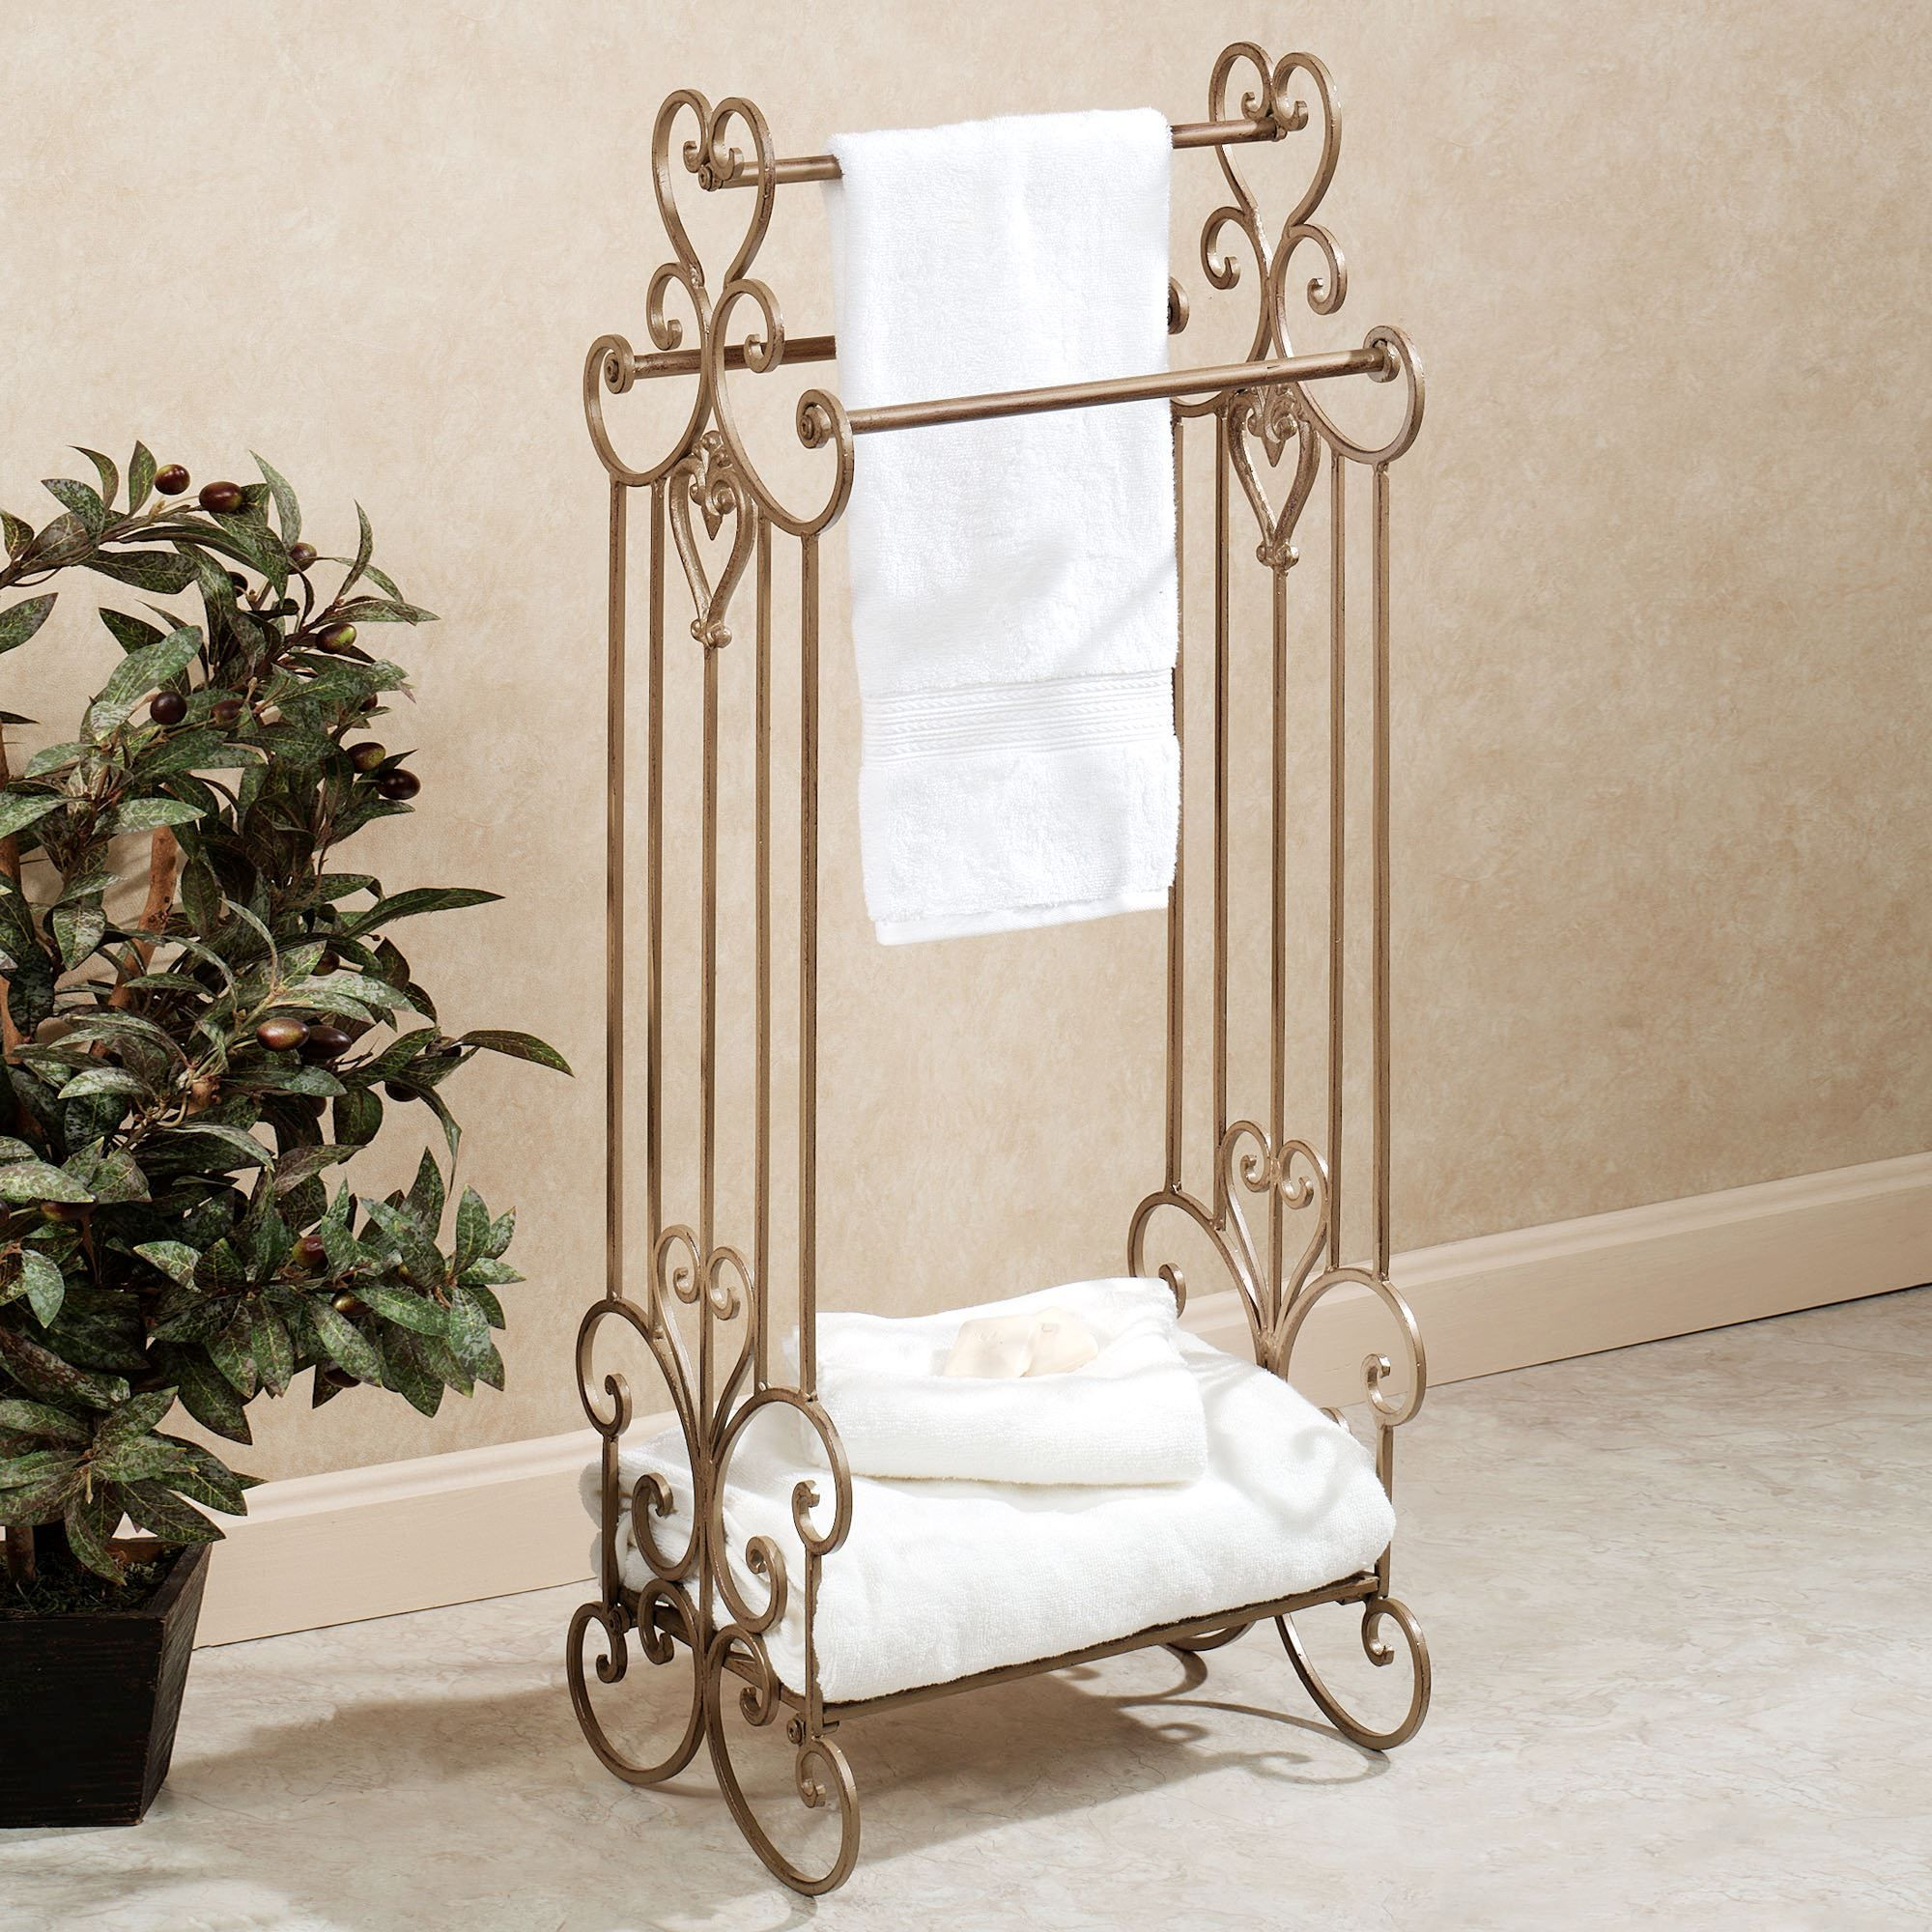 products storage stand rack copper bathroom iron for towel shelf organizer